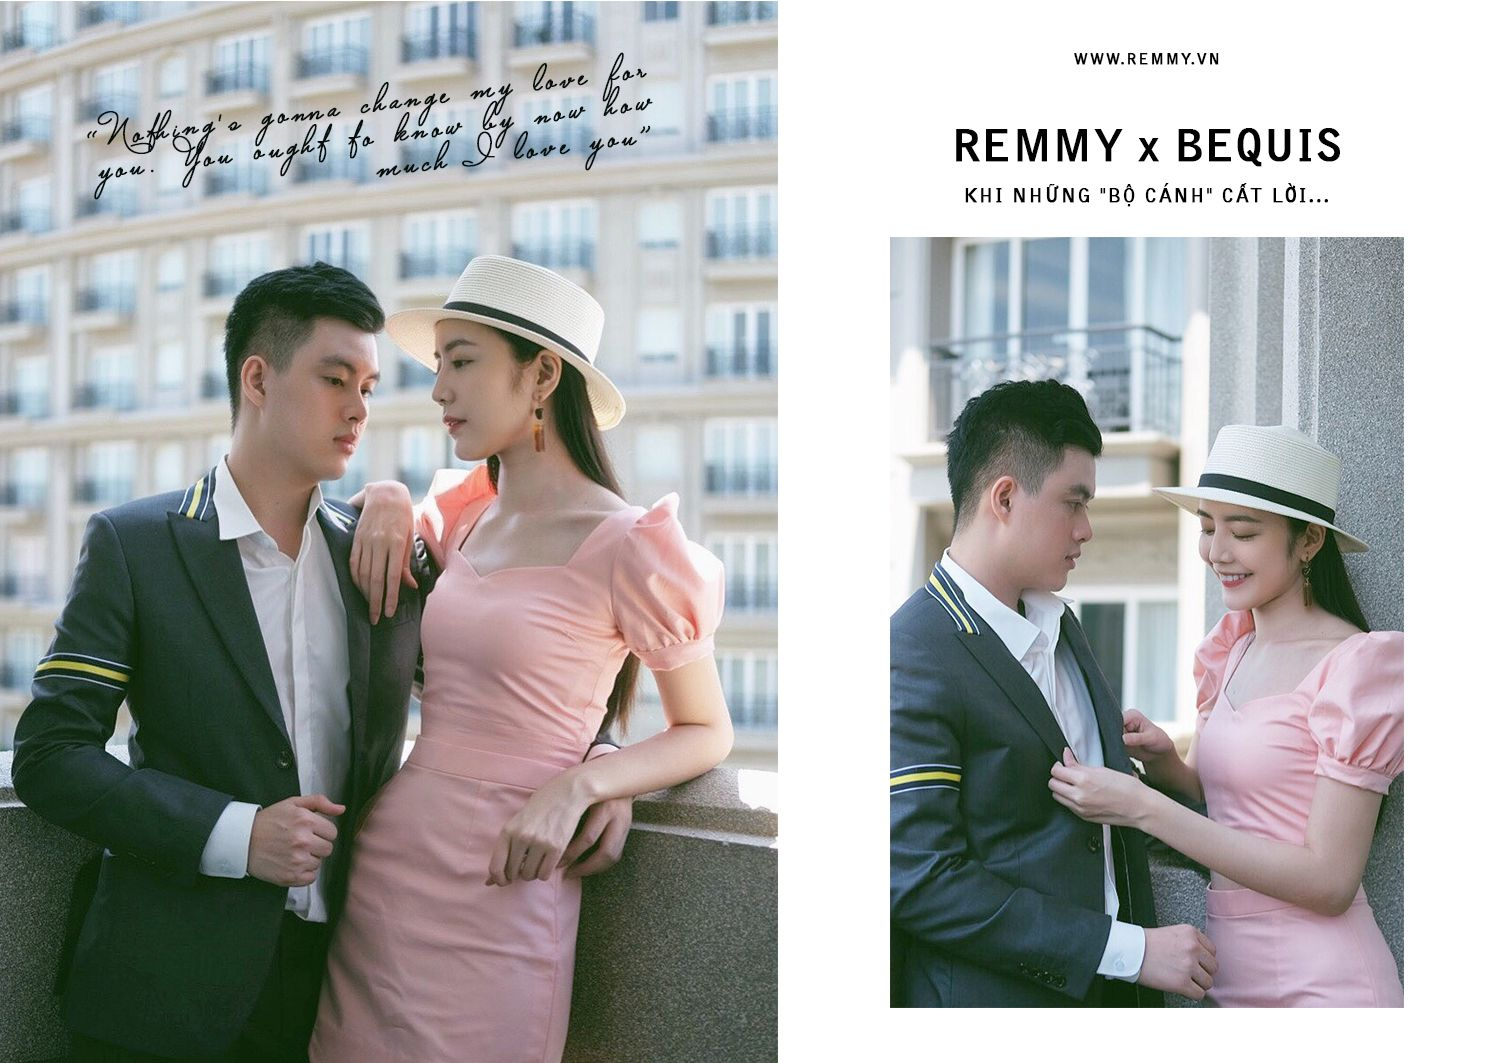 REMMY x BEQUIS: Khi những